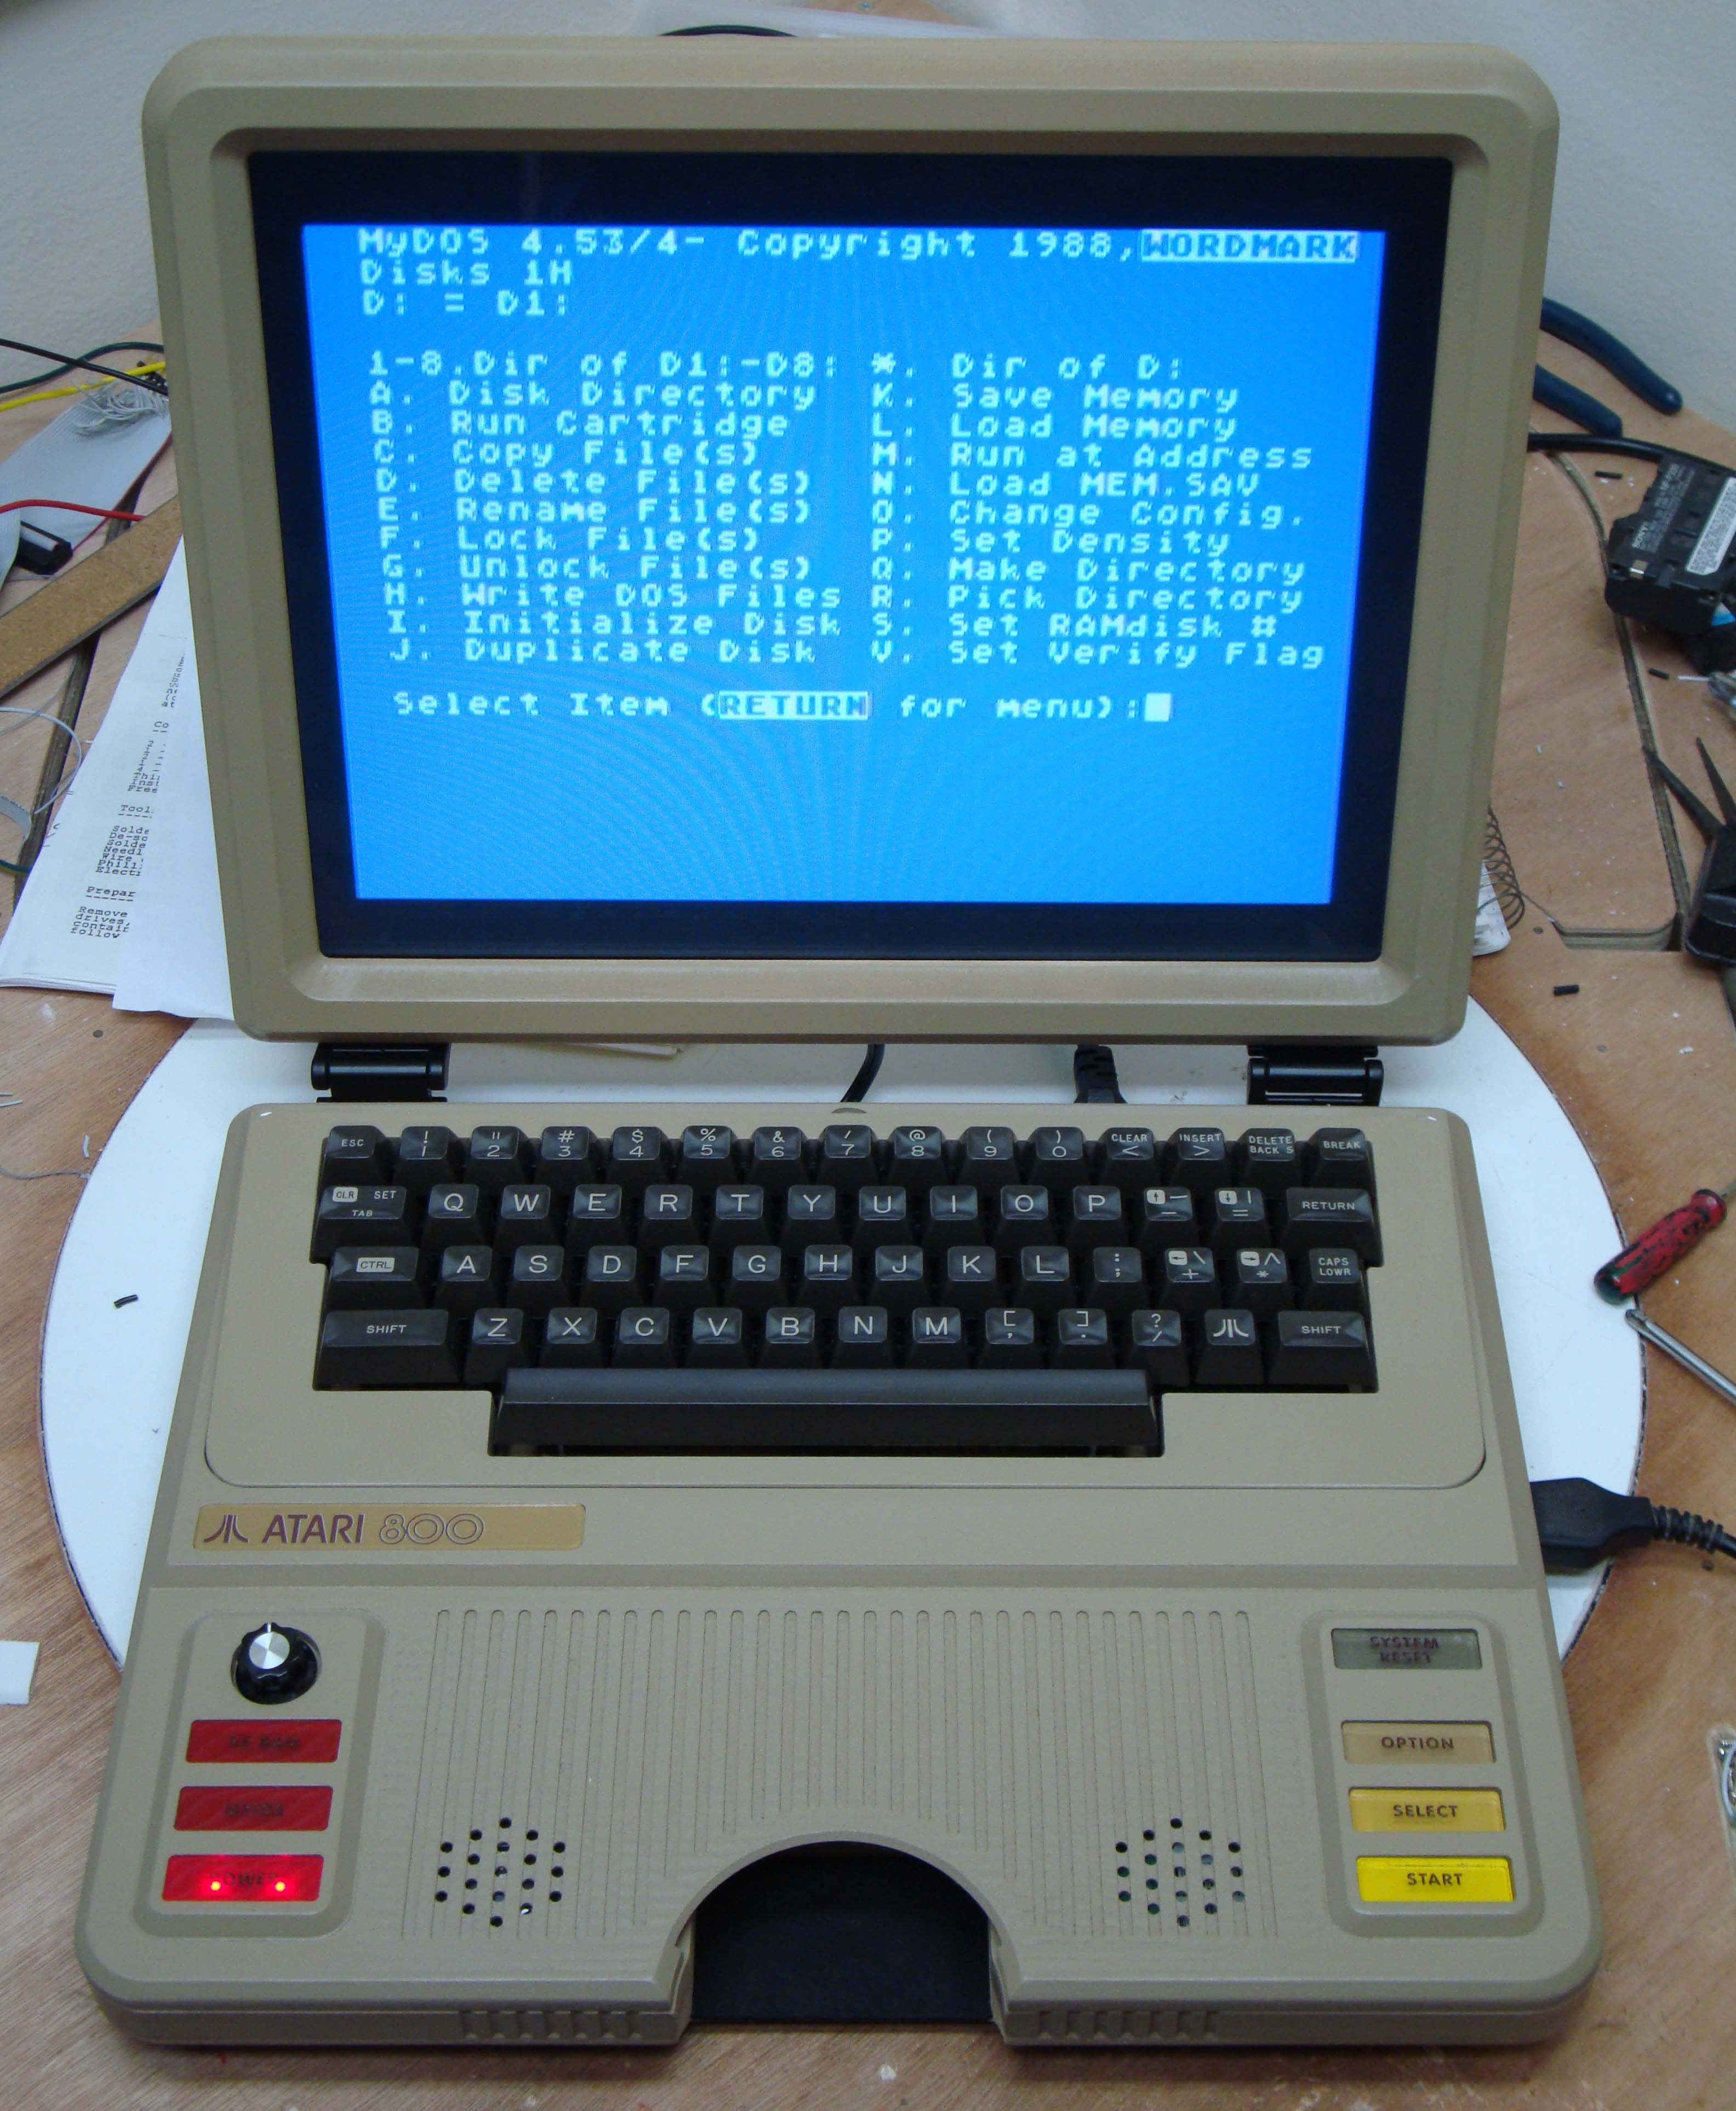 New Atari 800 Laptop | Web Portal for Benjamin J Heckendorn